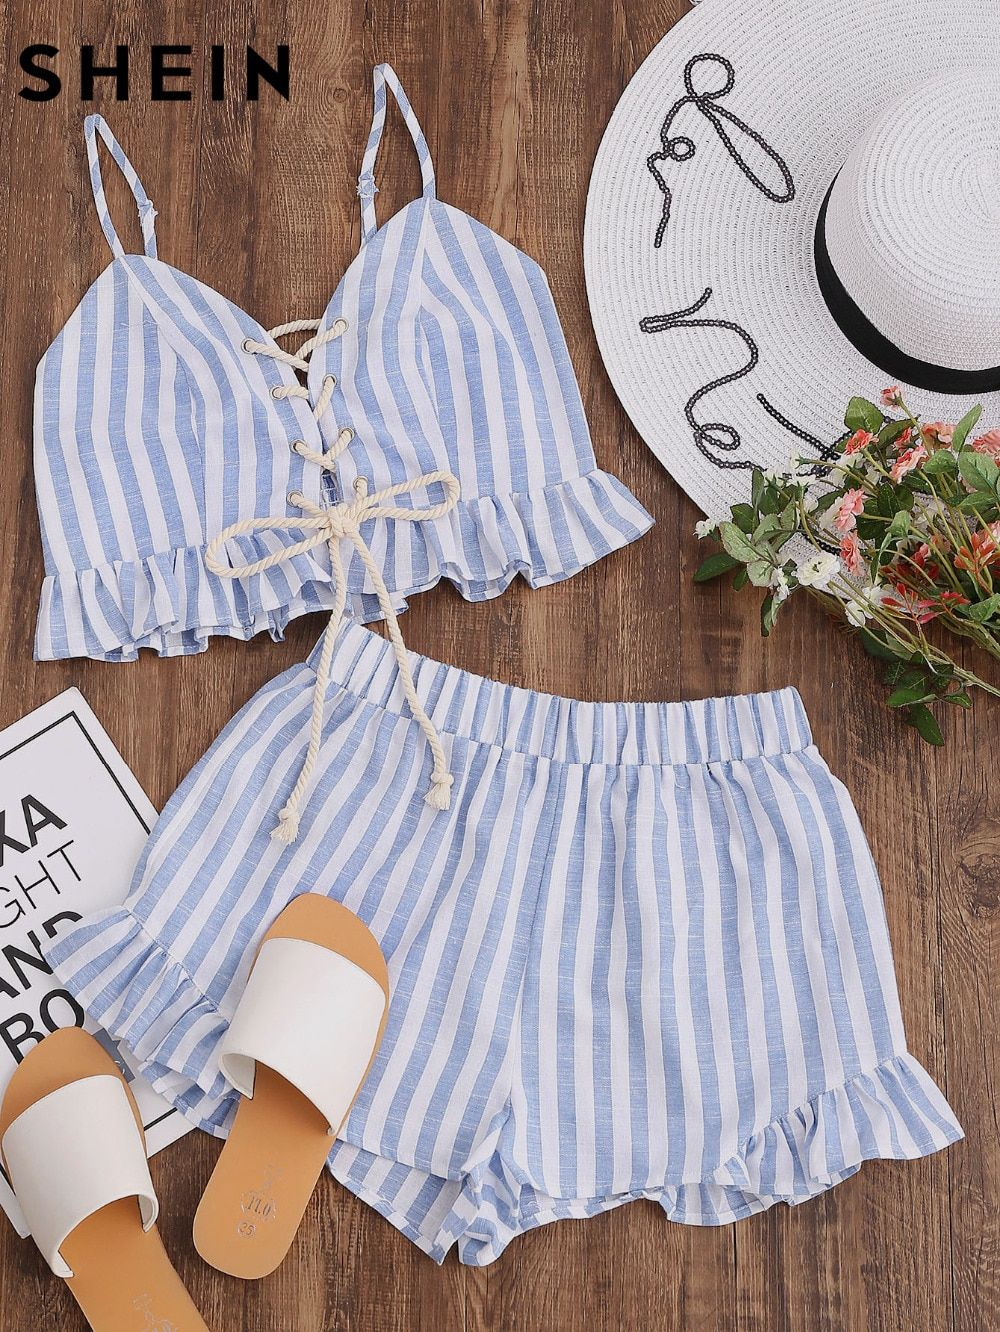 SHEIN <font><b>2017</b></font> Women Summer Two Piece Set Blue Striped Sleeveless Lace Up Smocked Crop Cami and Ruffle Shorts Co-Ord